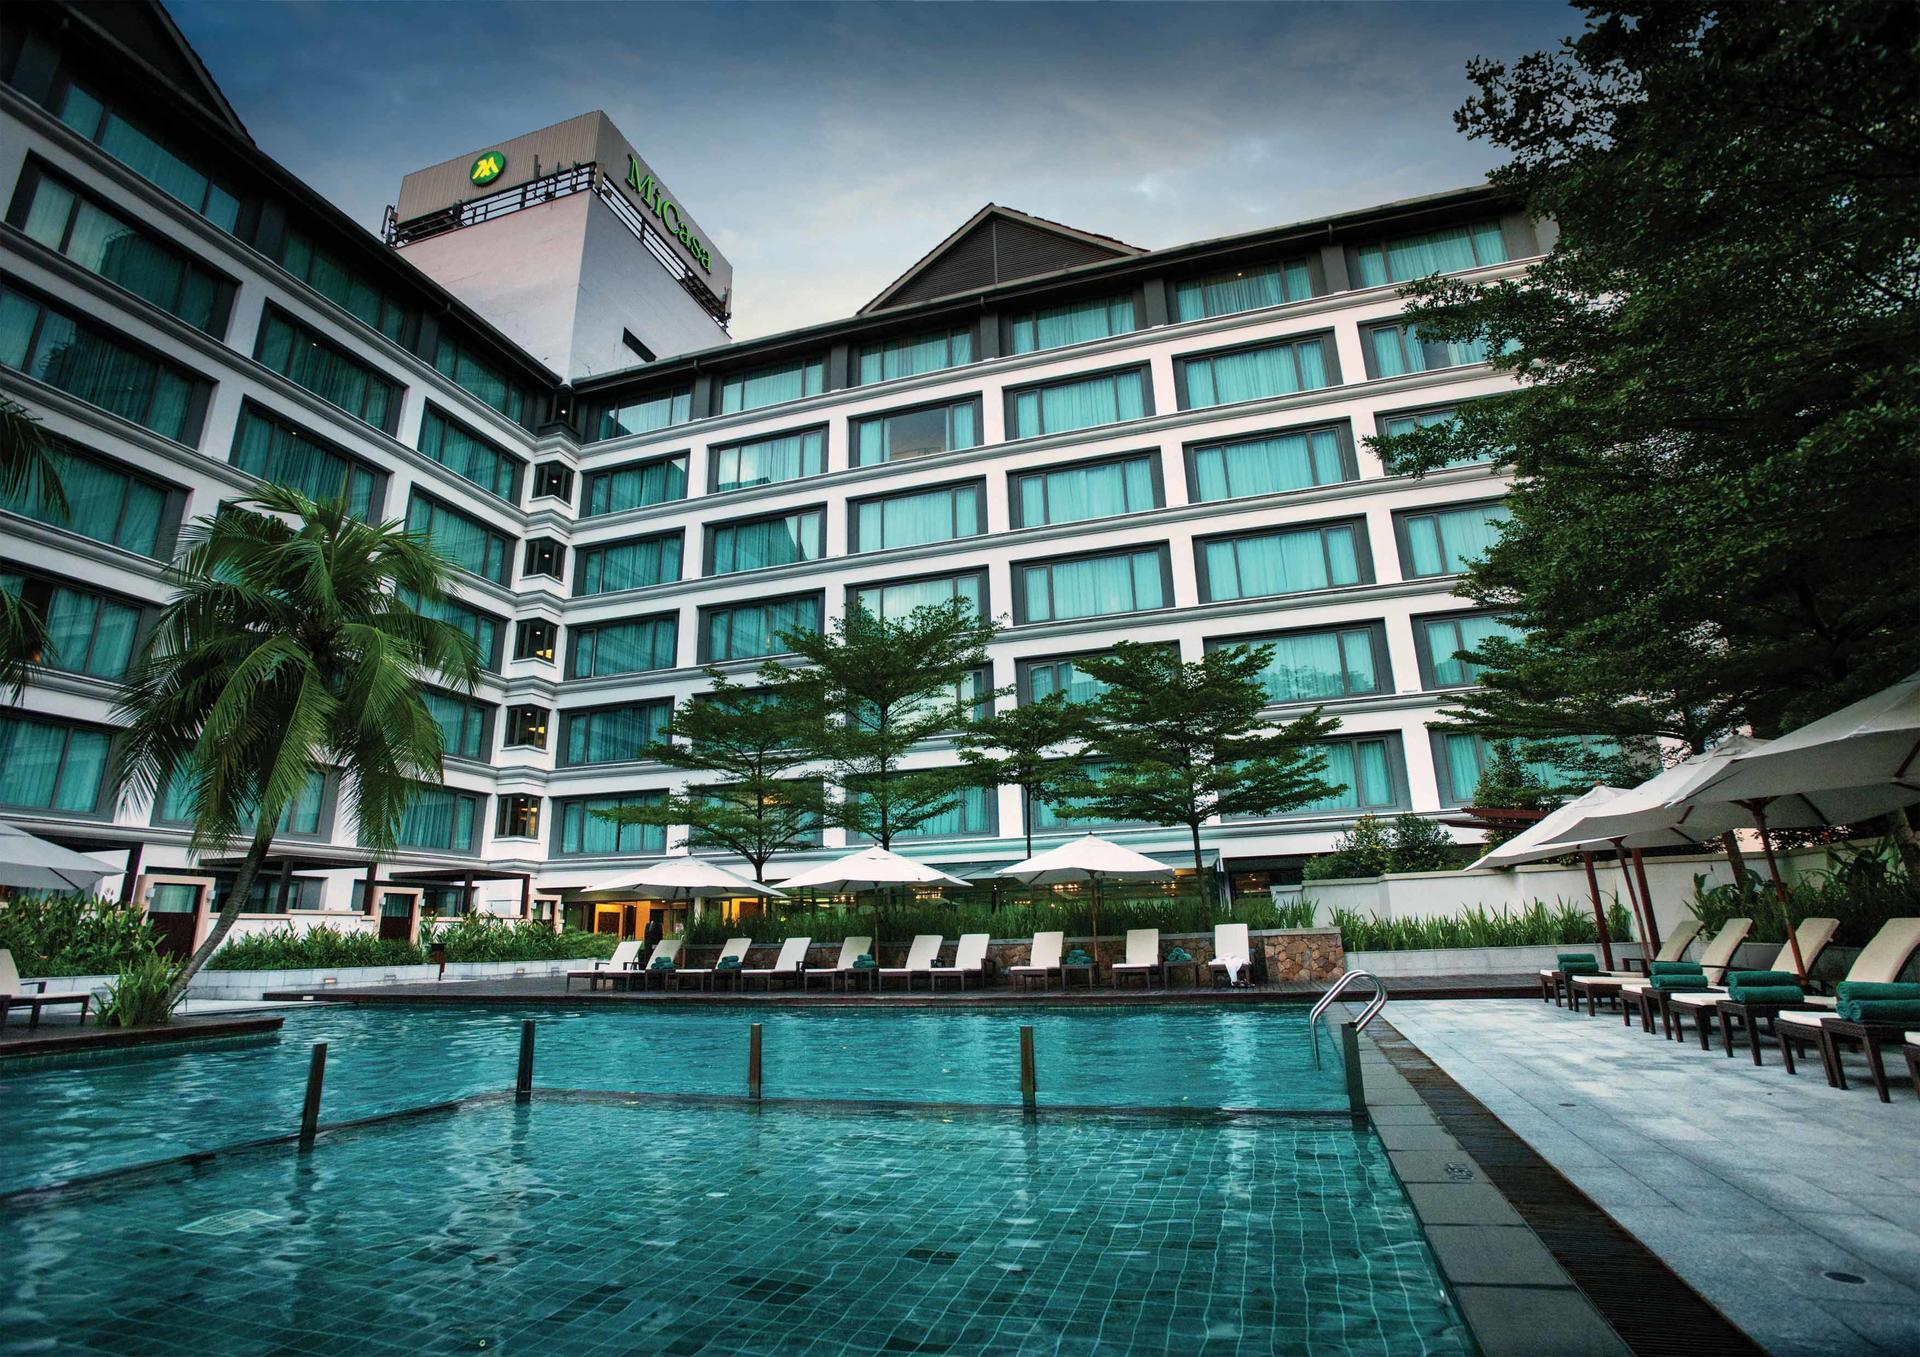 Location Serviced Suites Hotel Kuala Lumpur Best Hotel